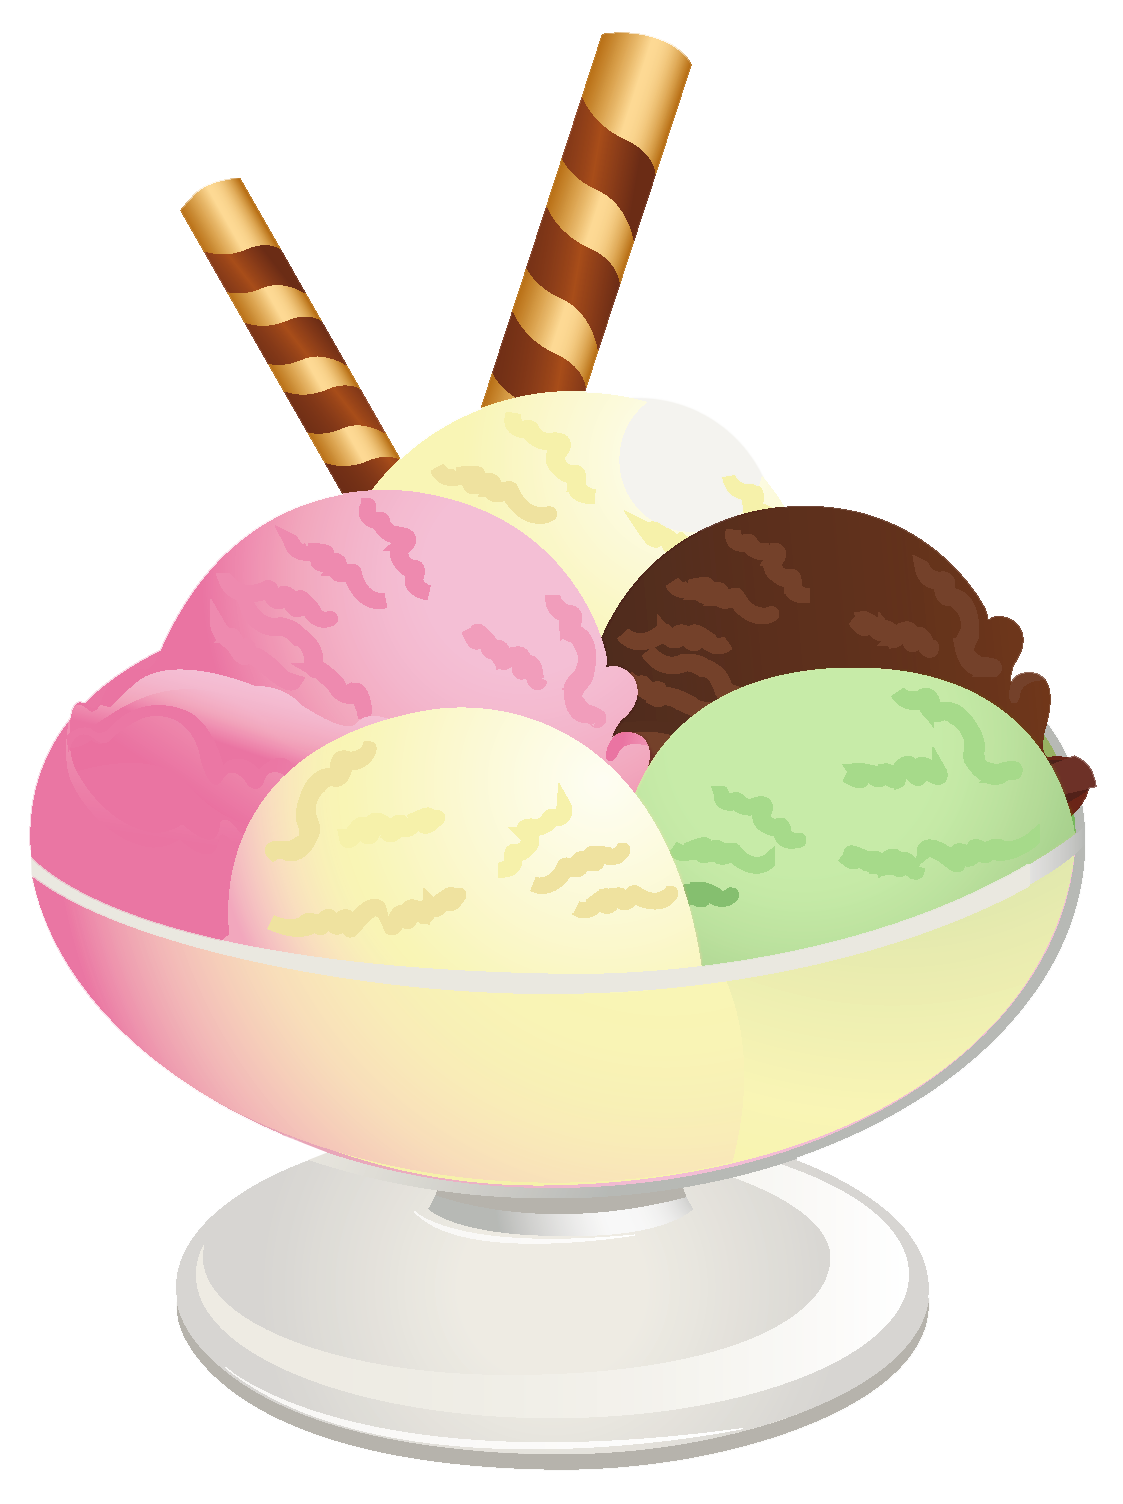 Huge ice cream sundae clipart image royalty free library 83+ Ice Cream Sundae Clip Art | ClipartLook image royalty free library